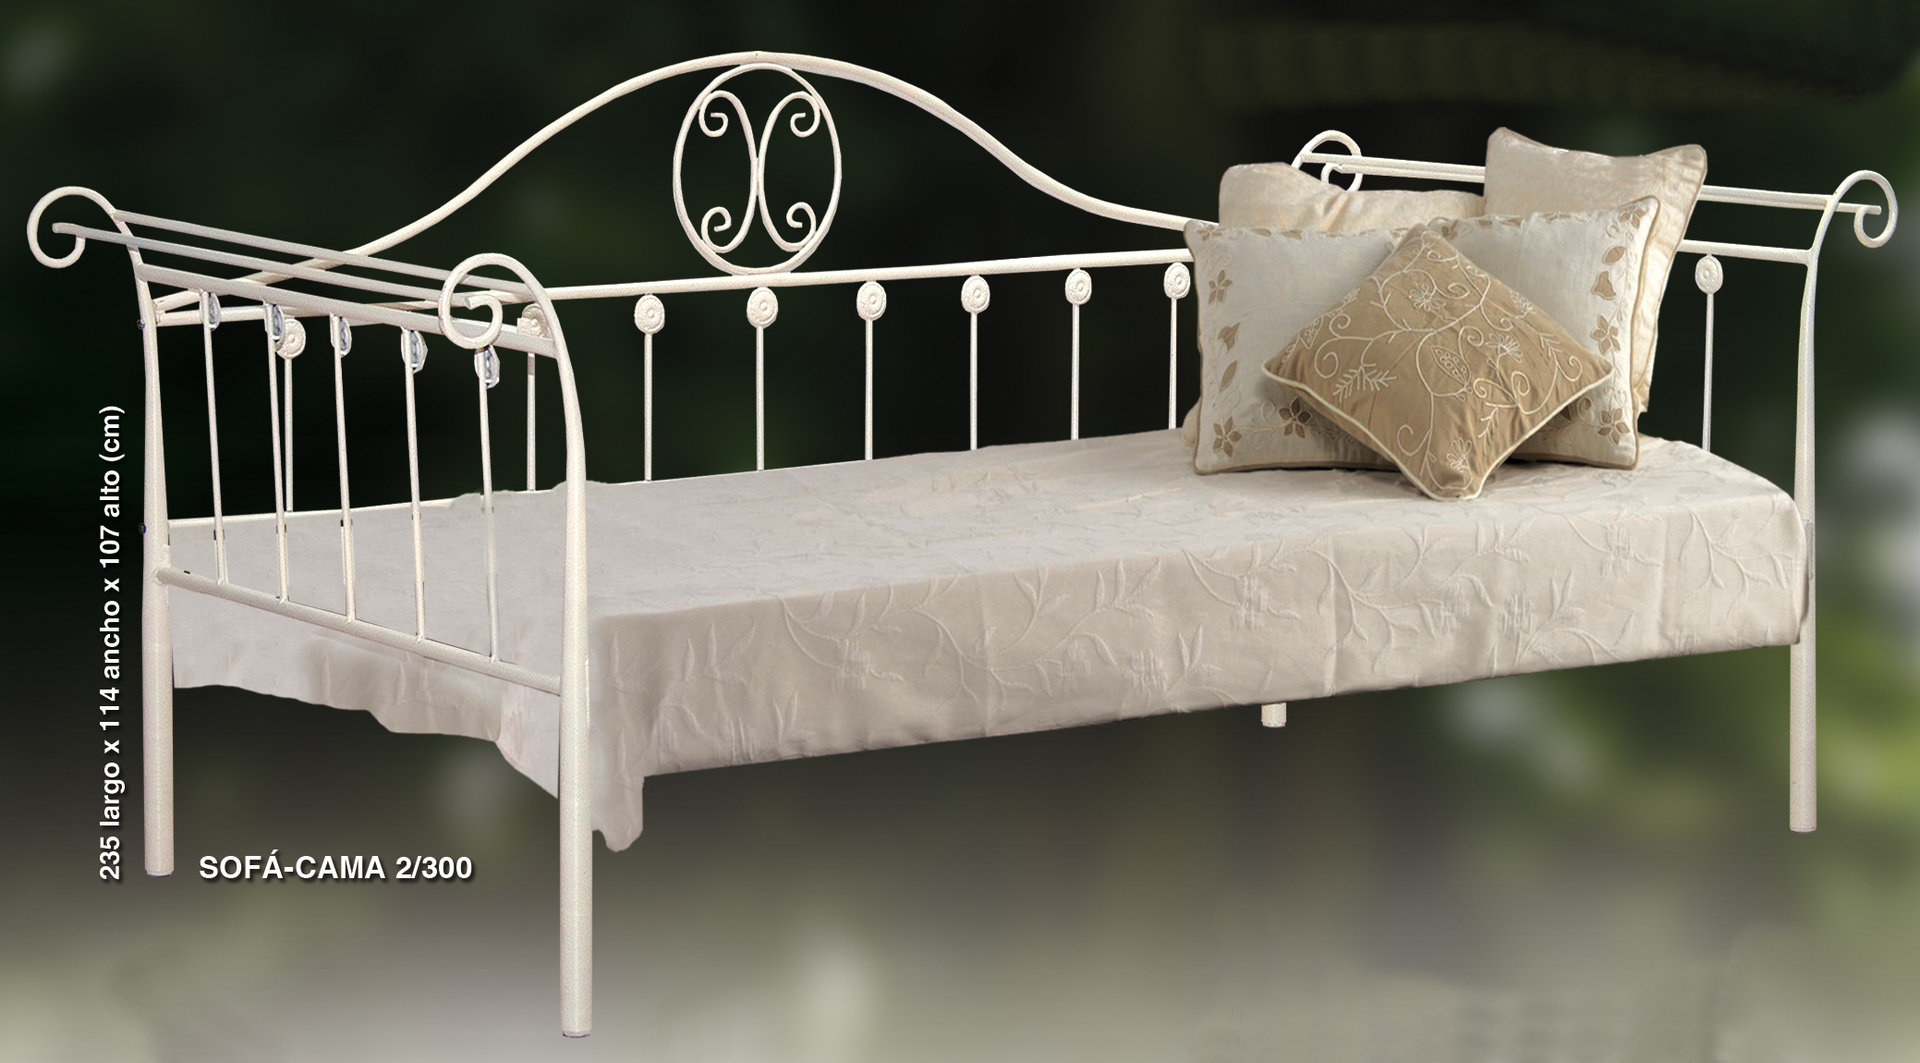 cama sofa forja what is the difference between a sleeper and pull out couch elegante alta gama 2 rustiluz